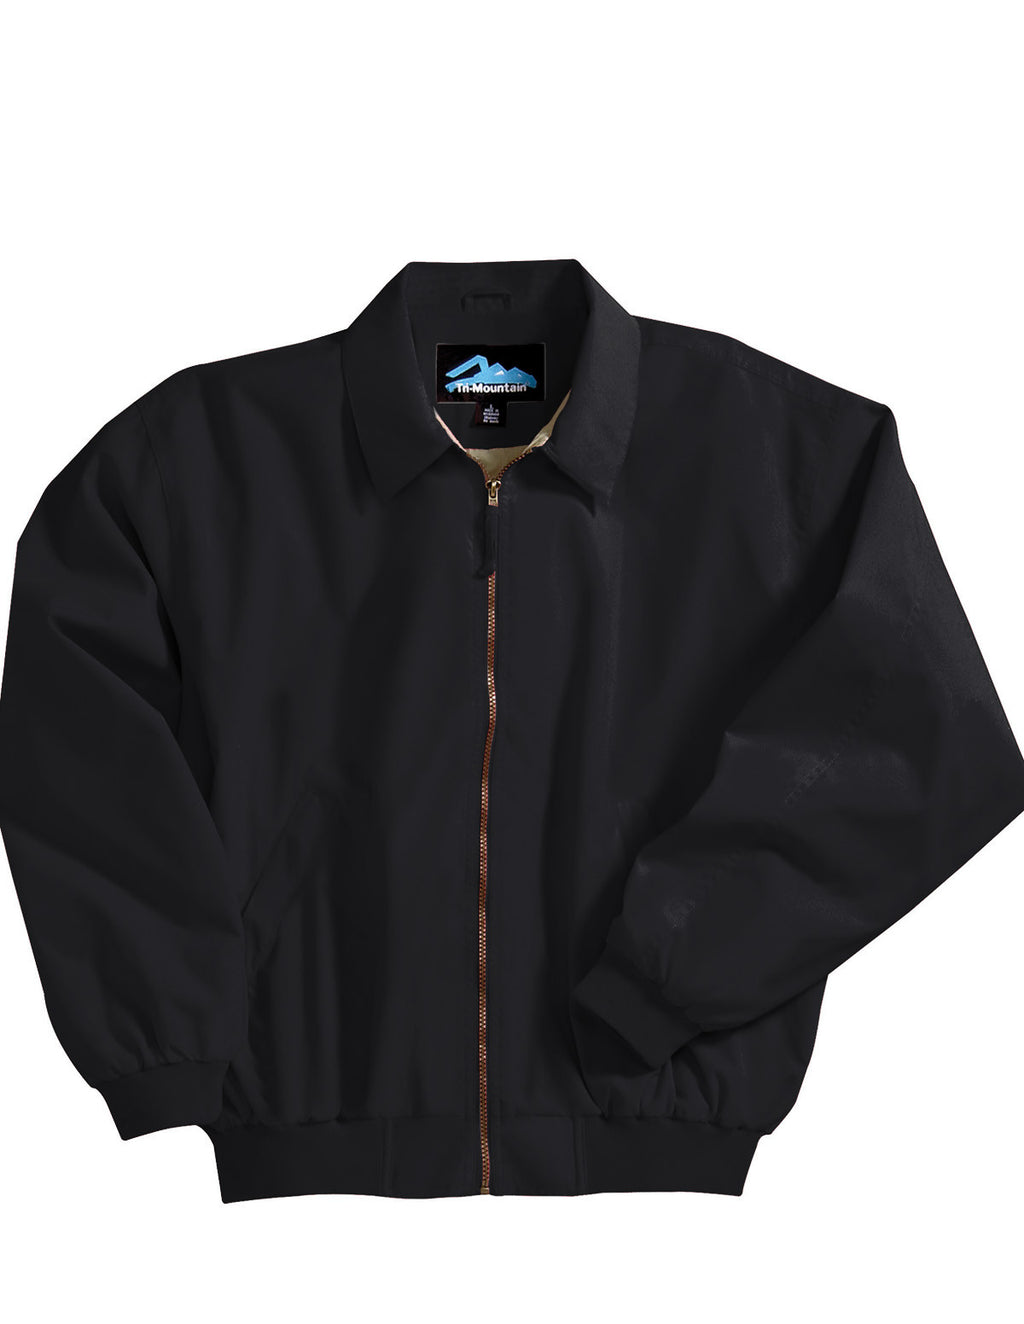 Tri-Mountain Lightweight Microfiber Jacket-1